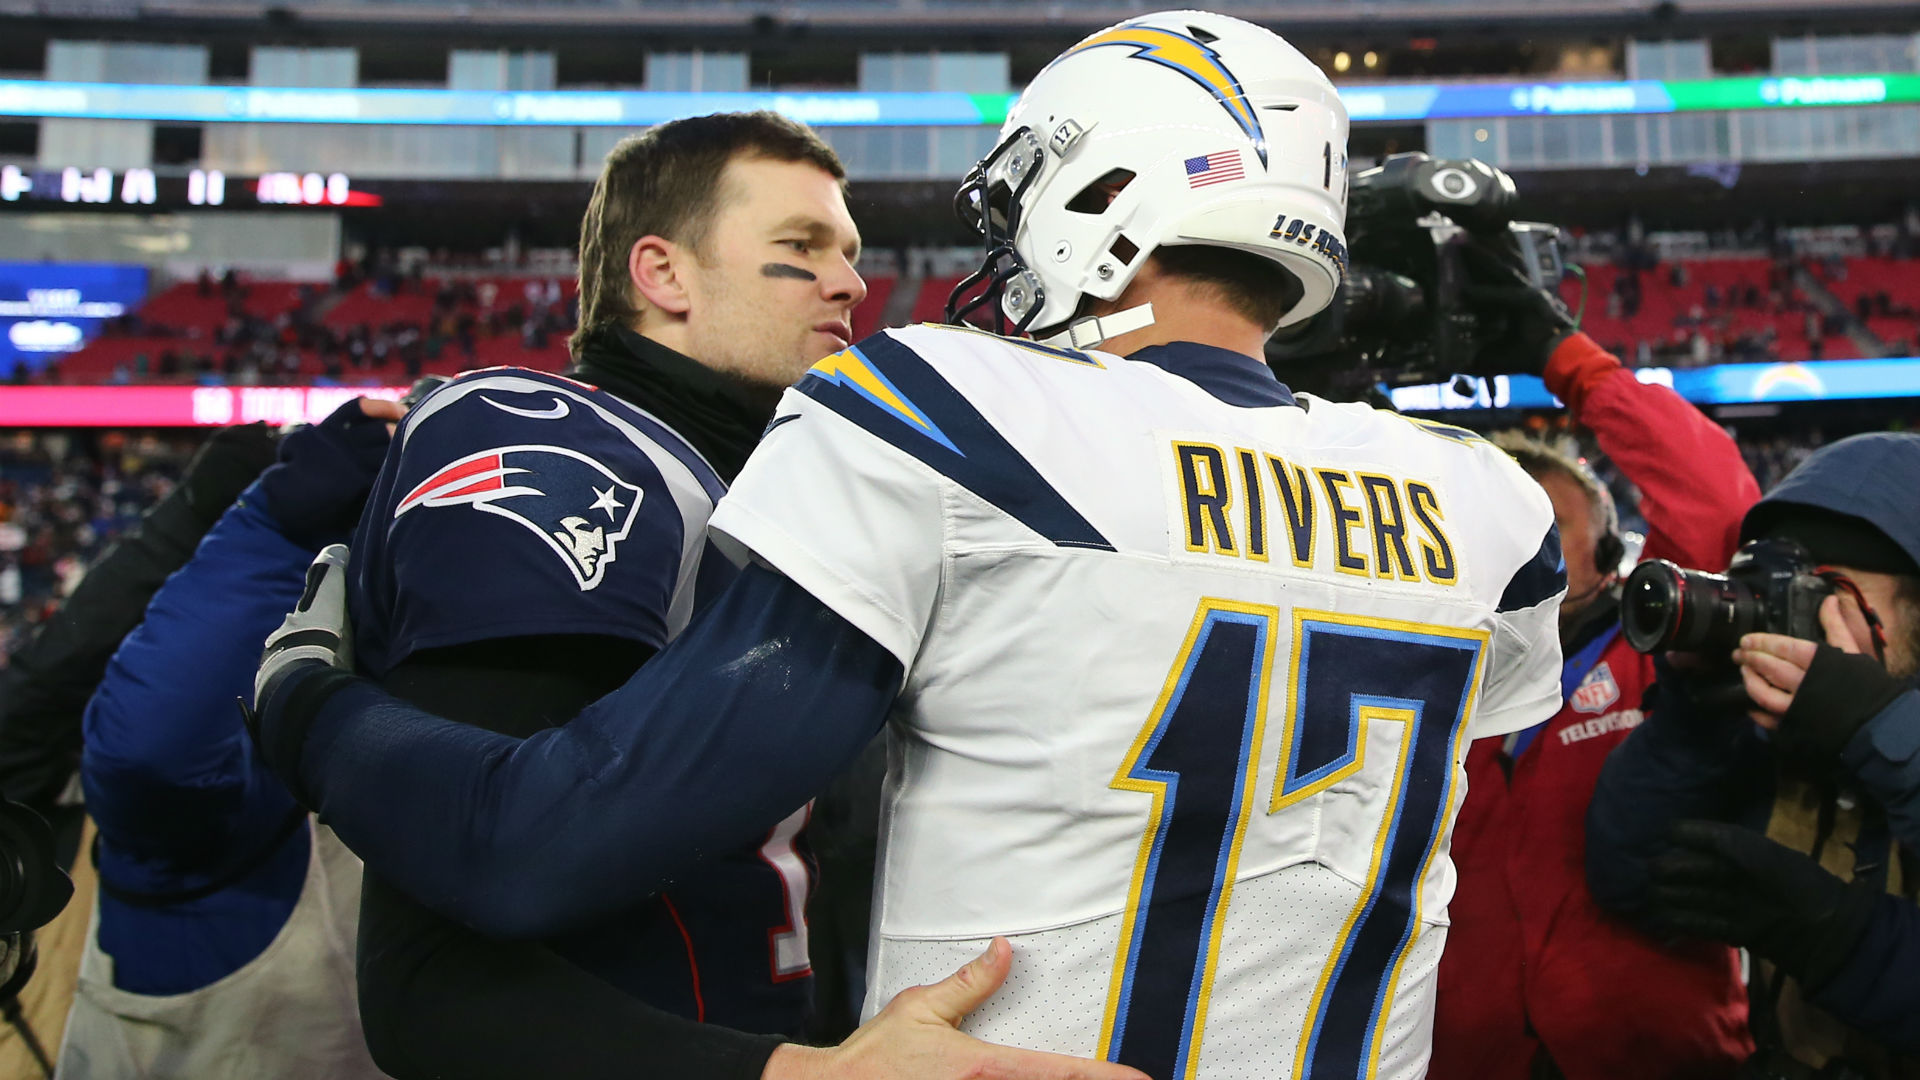 Philip Rivers: Tom Brady, other elite QBs can't be judged solely by Super Bowl wins